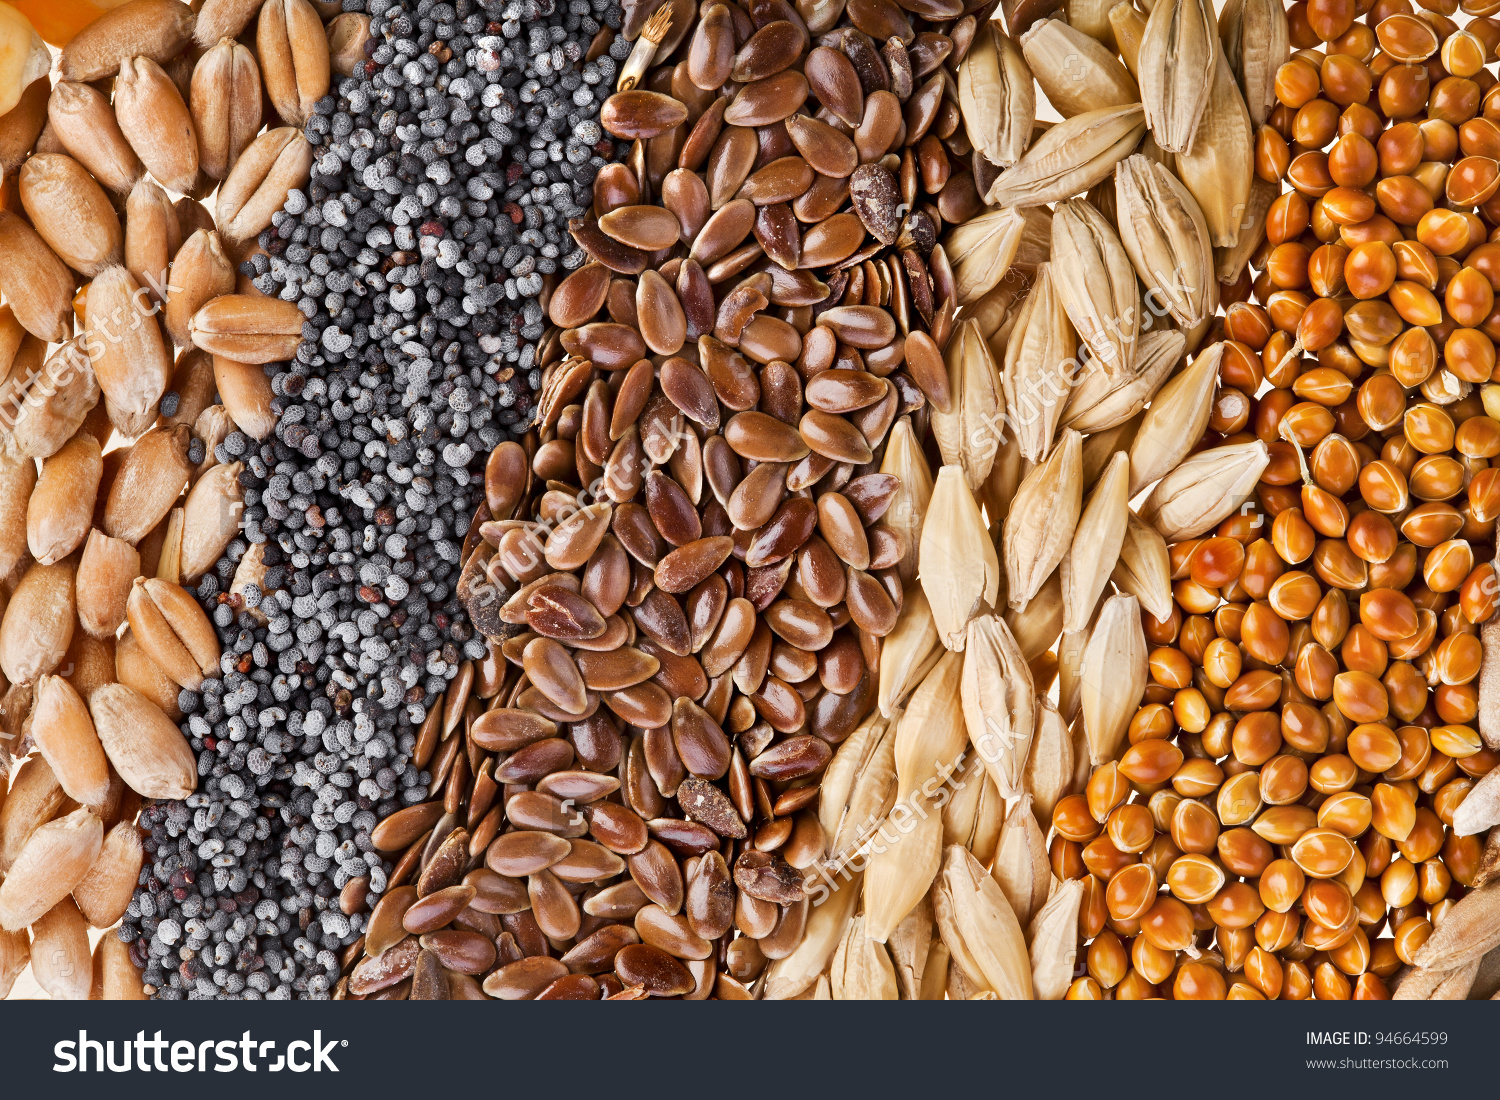 Cereal Grains Seeds Rye Wheat Barley Stock Photo 94664599.